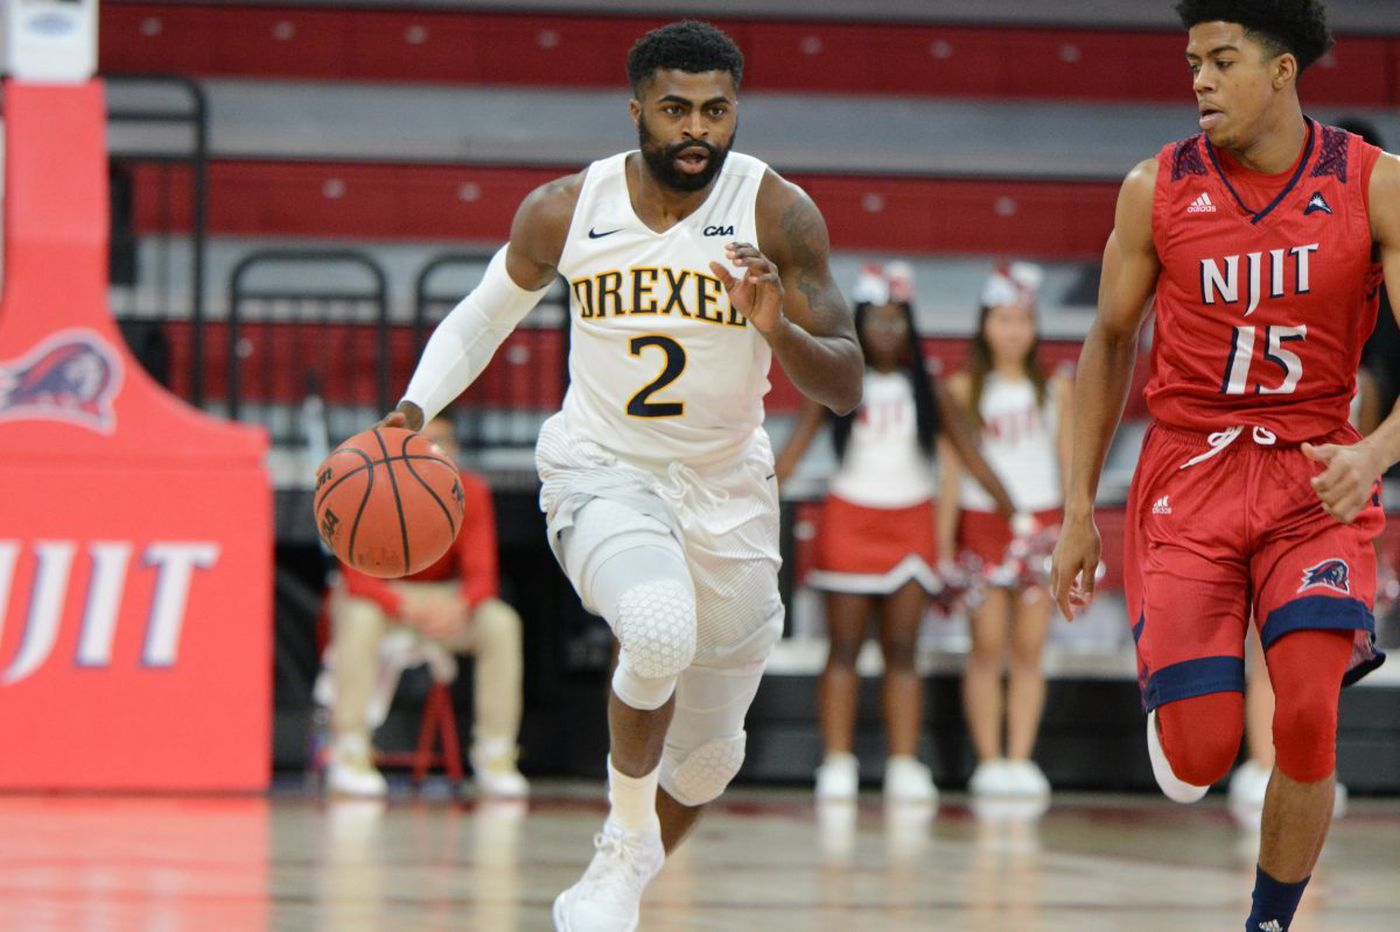 Drexel falls to NJIT, drops its third straight game